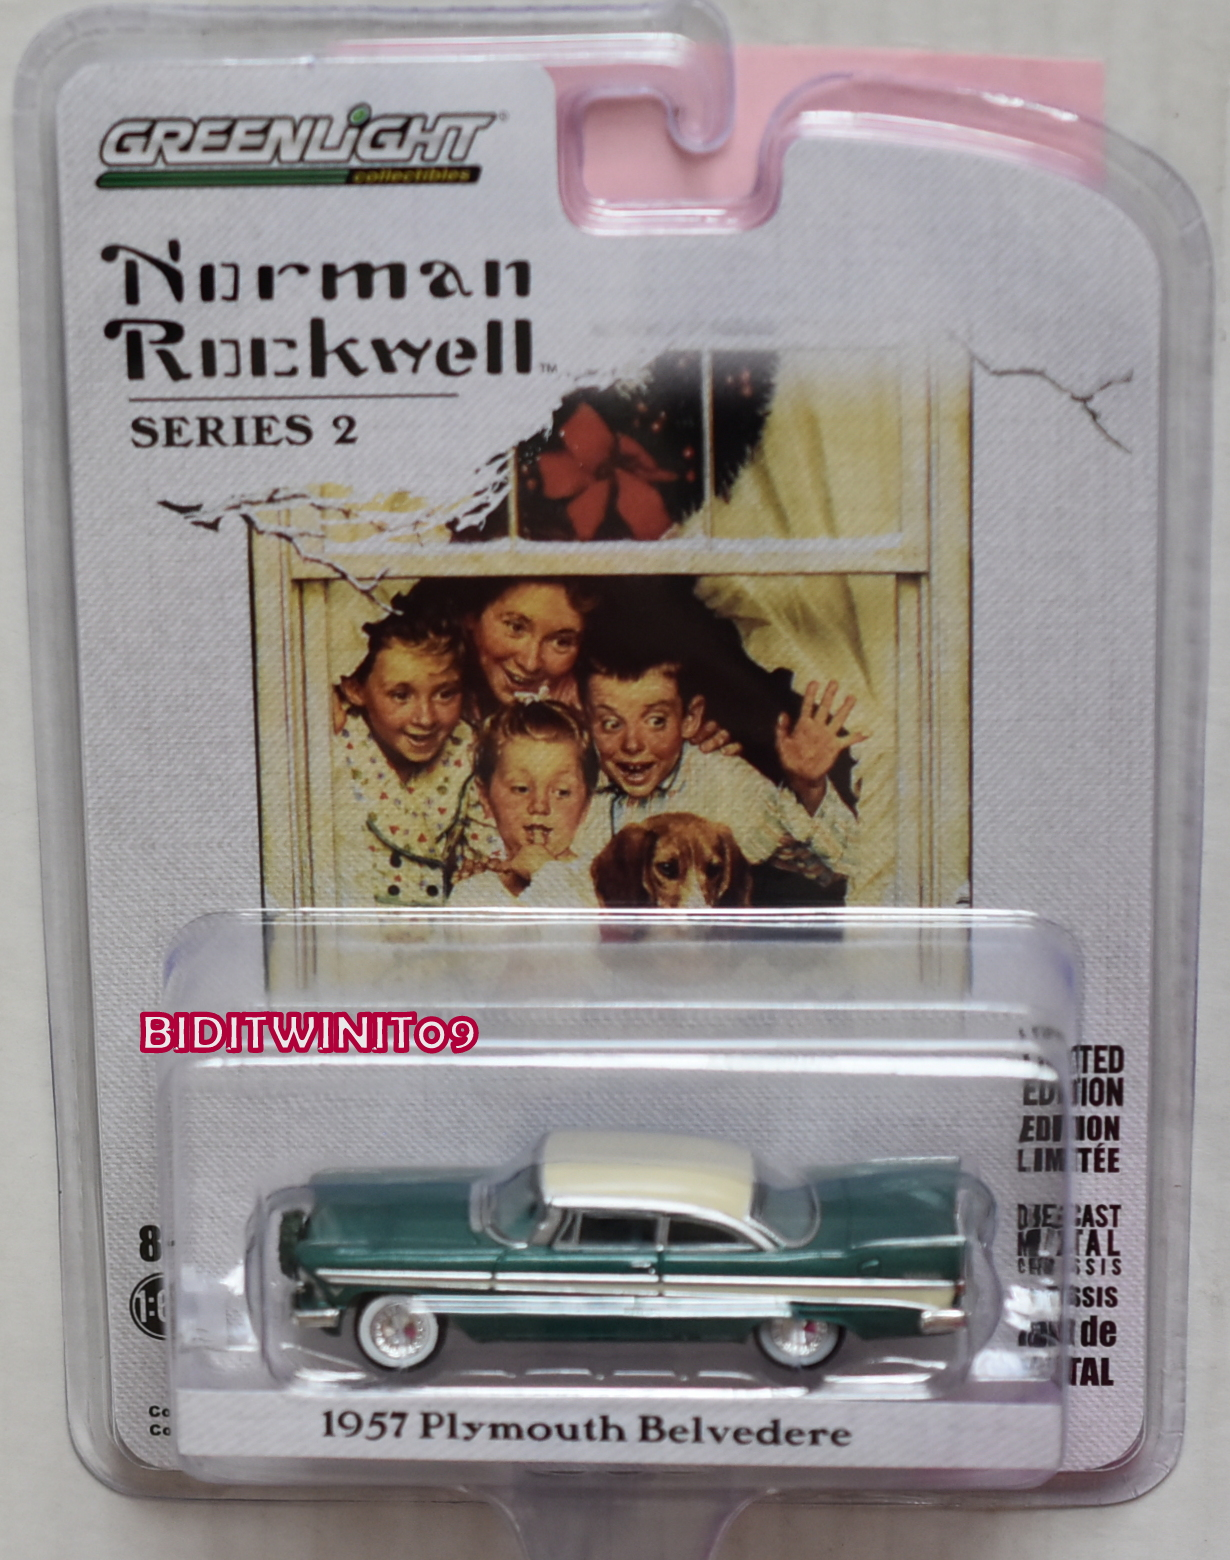 GREENLIGHT NORMAN ROCKWELL SERIES 2 1957 PLYMOUTH BELVEDERE